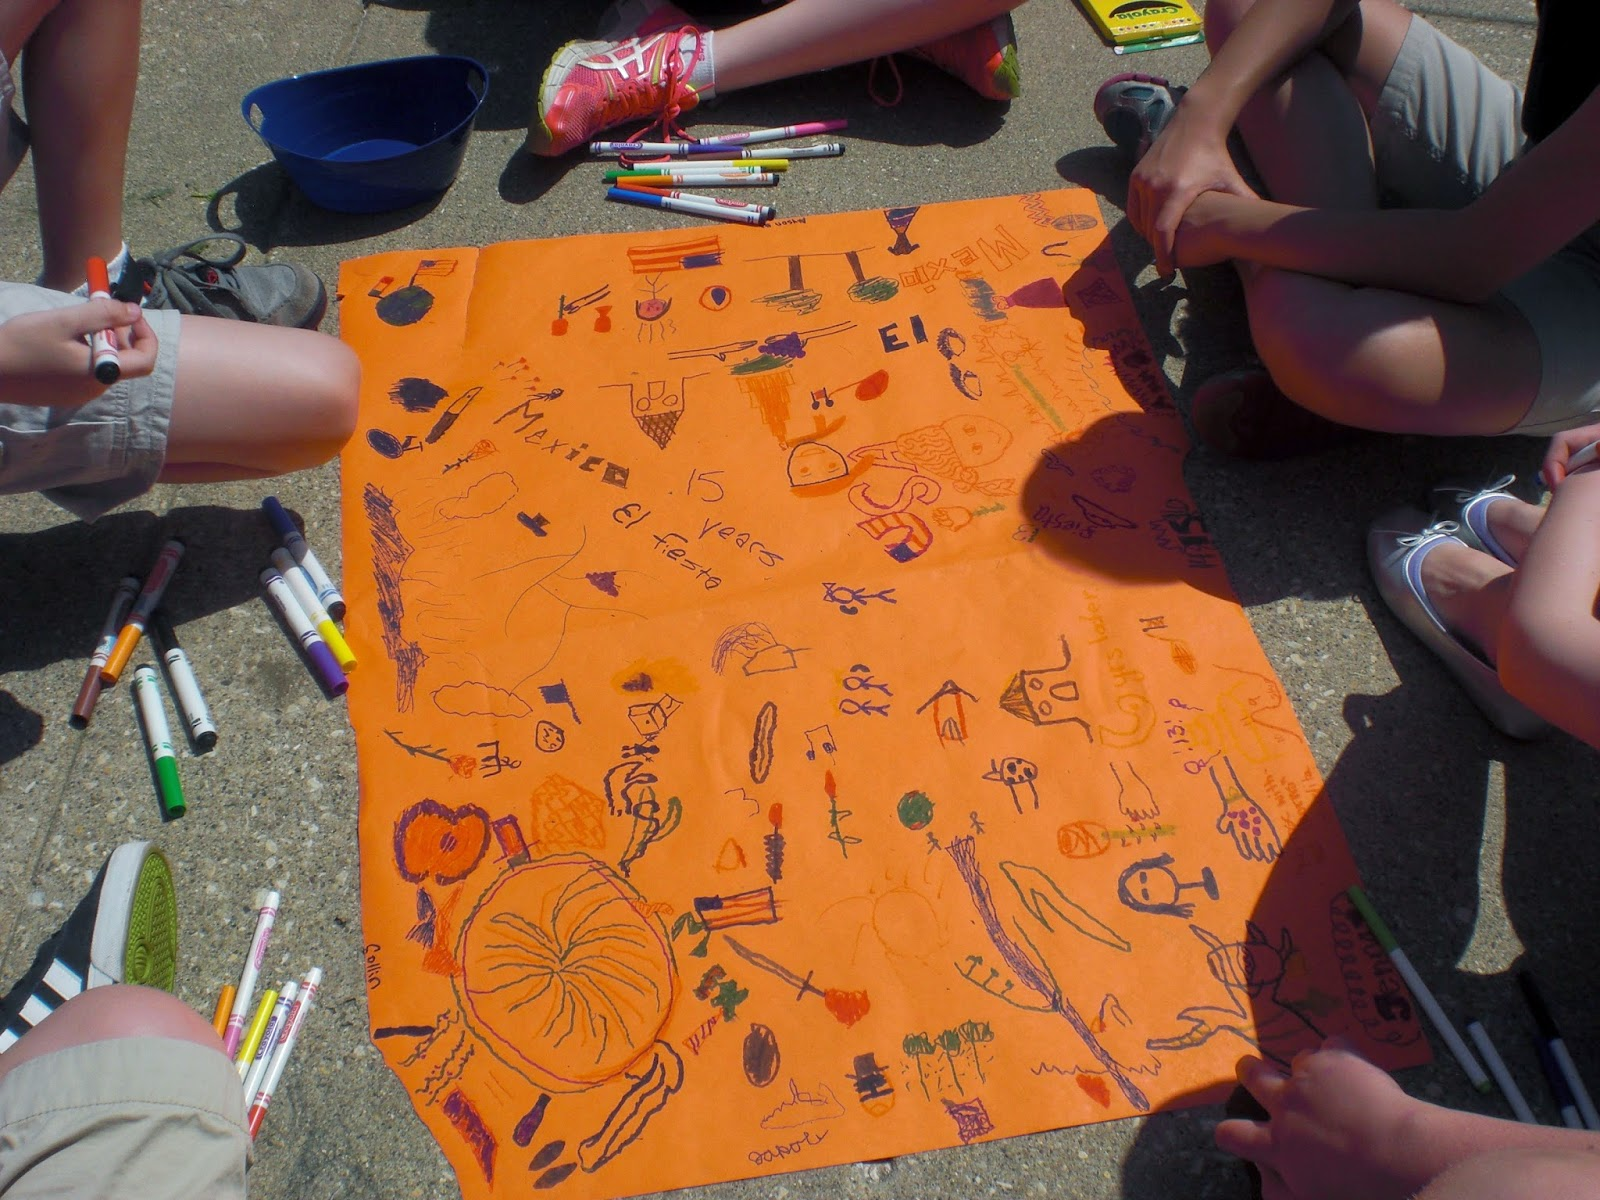 Graffiti wall activity - Maybe A Graffiti Wall Would Be A Good Formative Activity For You To Try In Your Classroom Pick A Topic And Give It A Try